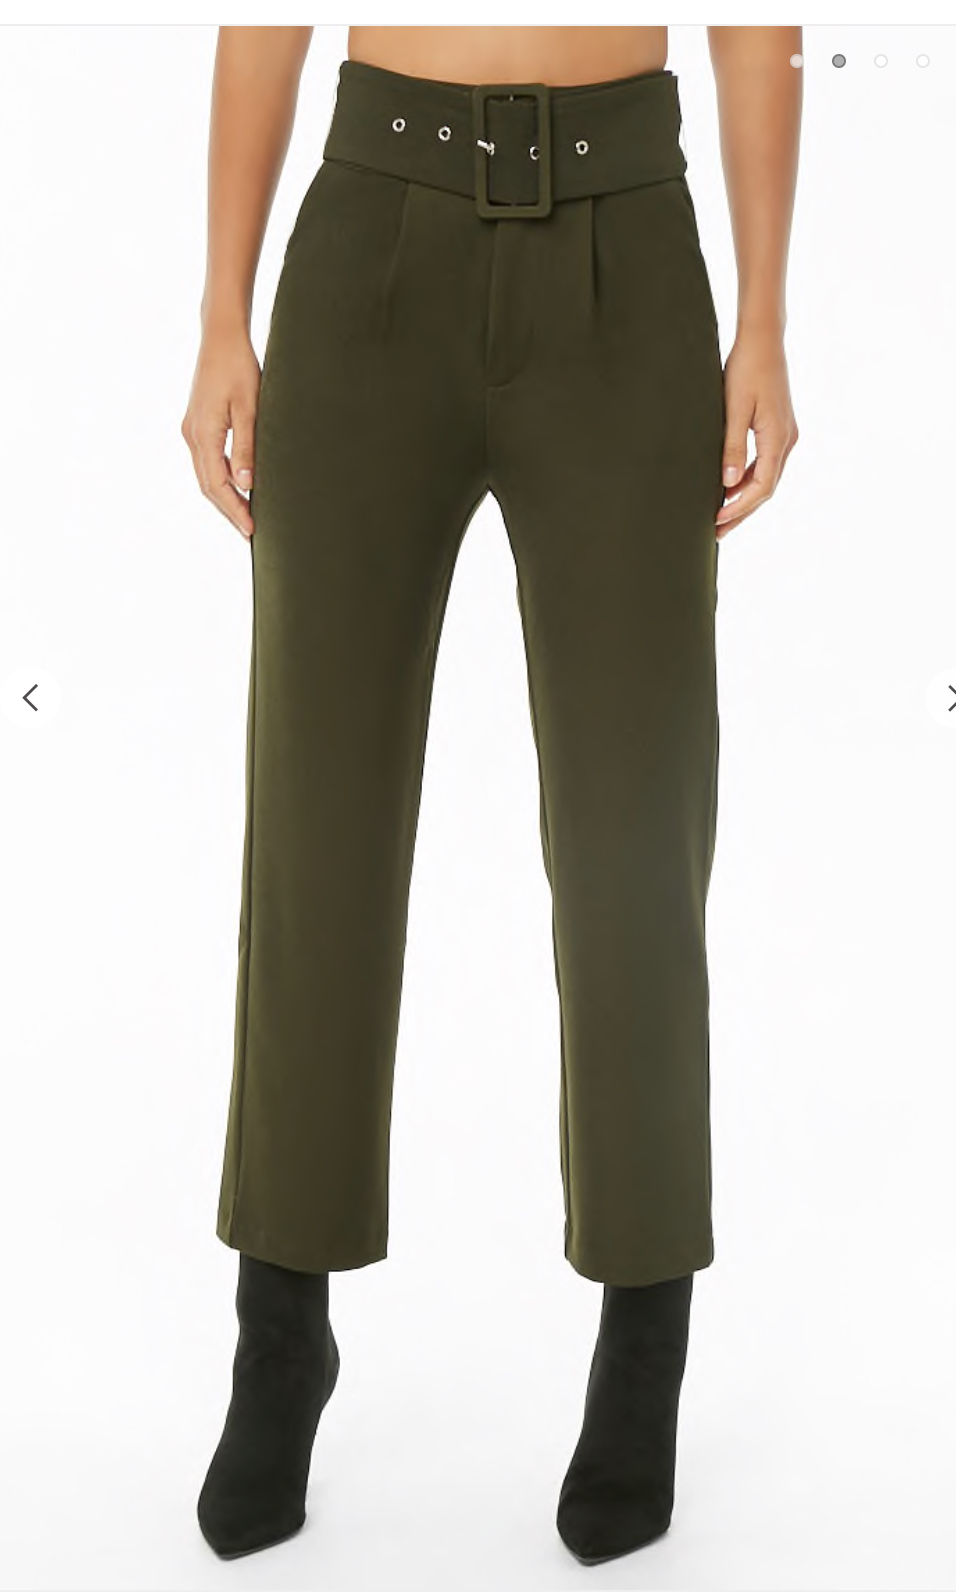 Dress pants with a funky touch like a chunky belt or stripes up the sides can bring a touch of personality to a normally plain professional garment.